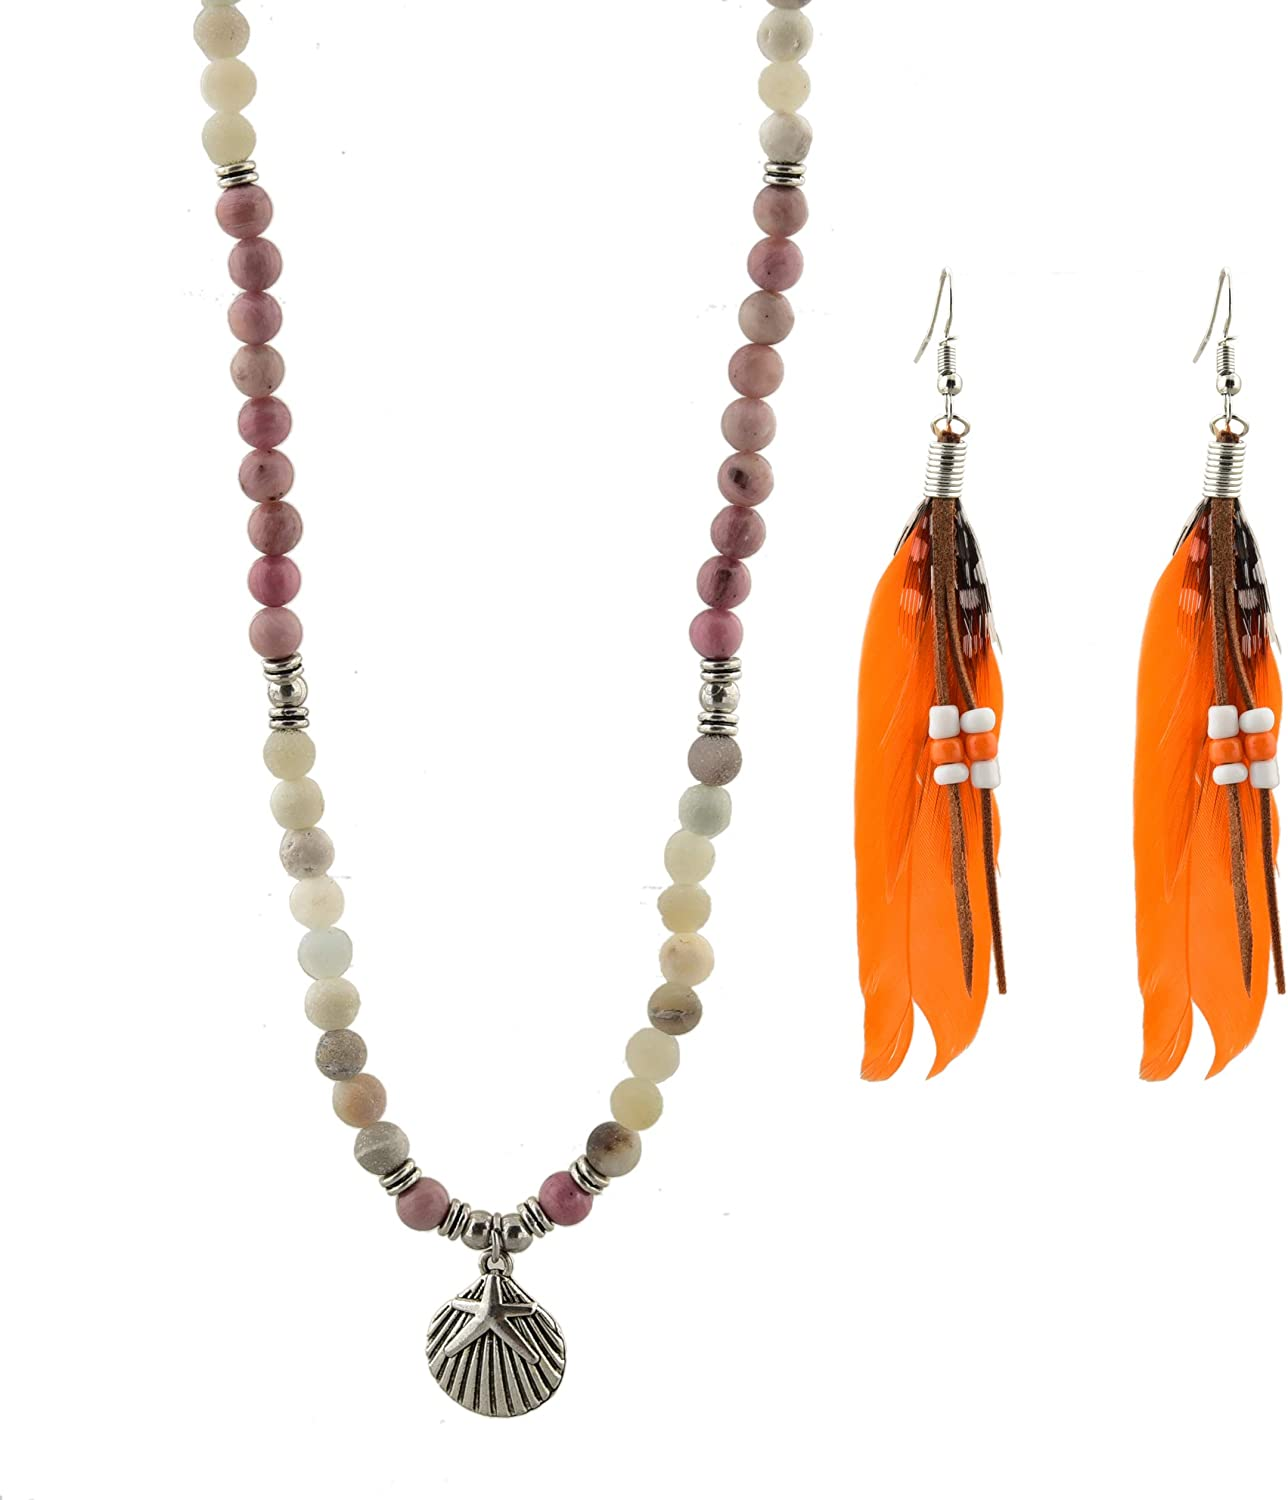 NecklaceNecklaces for WomenStonesStone NecklaceStone Necklace WomenStone PendantStone Pendant NecklaceRhodochrosite Necklace